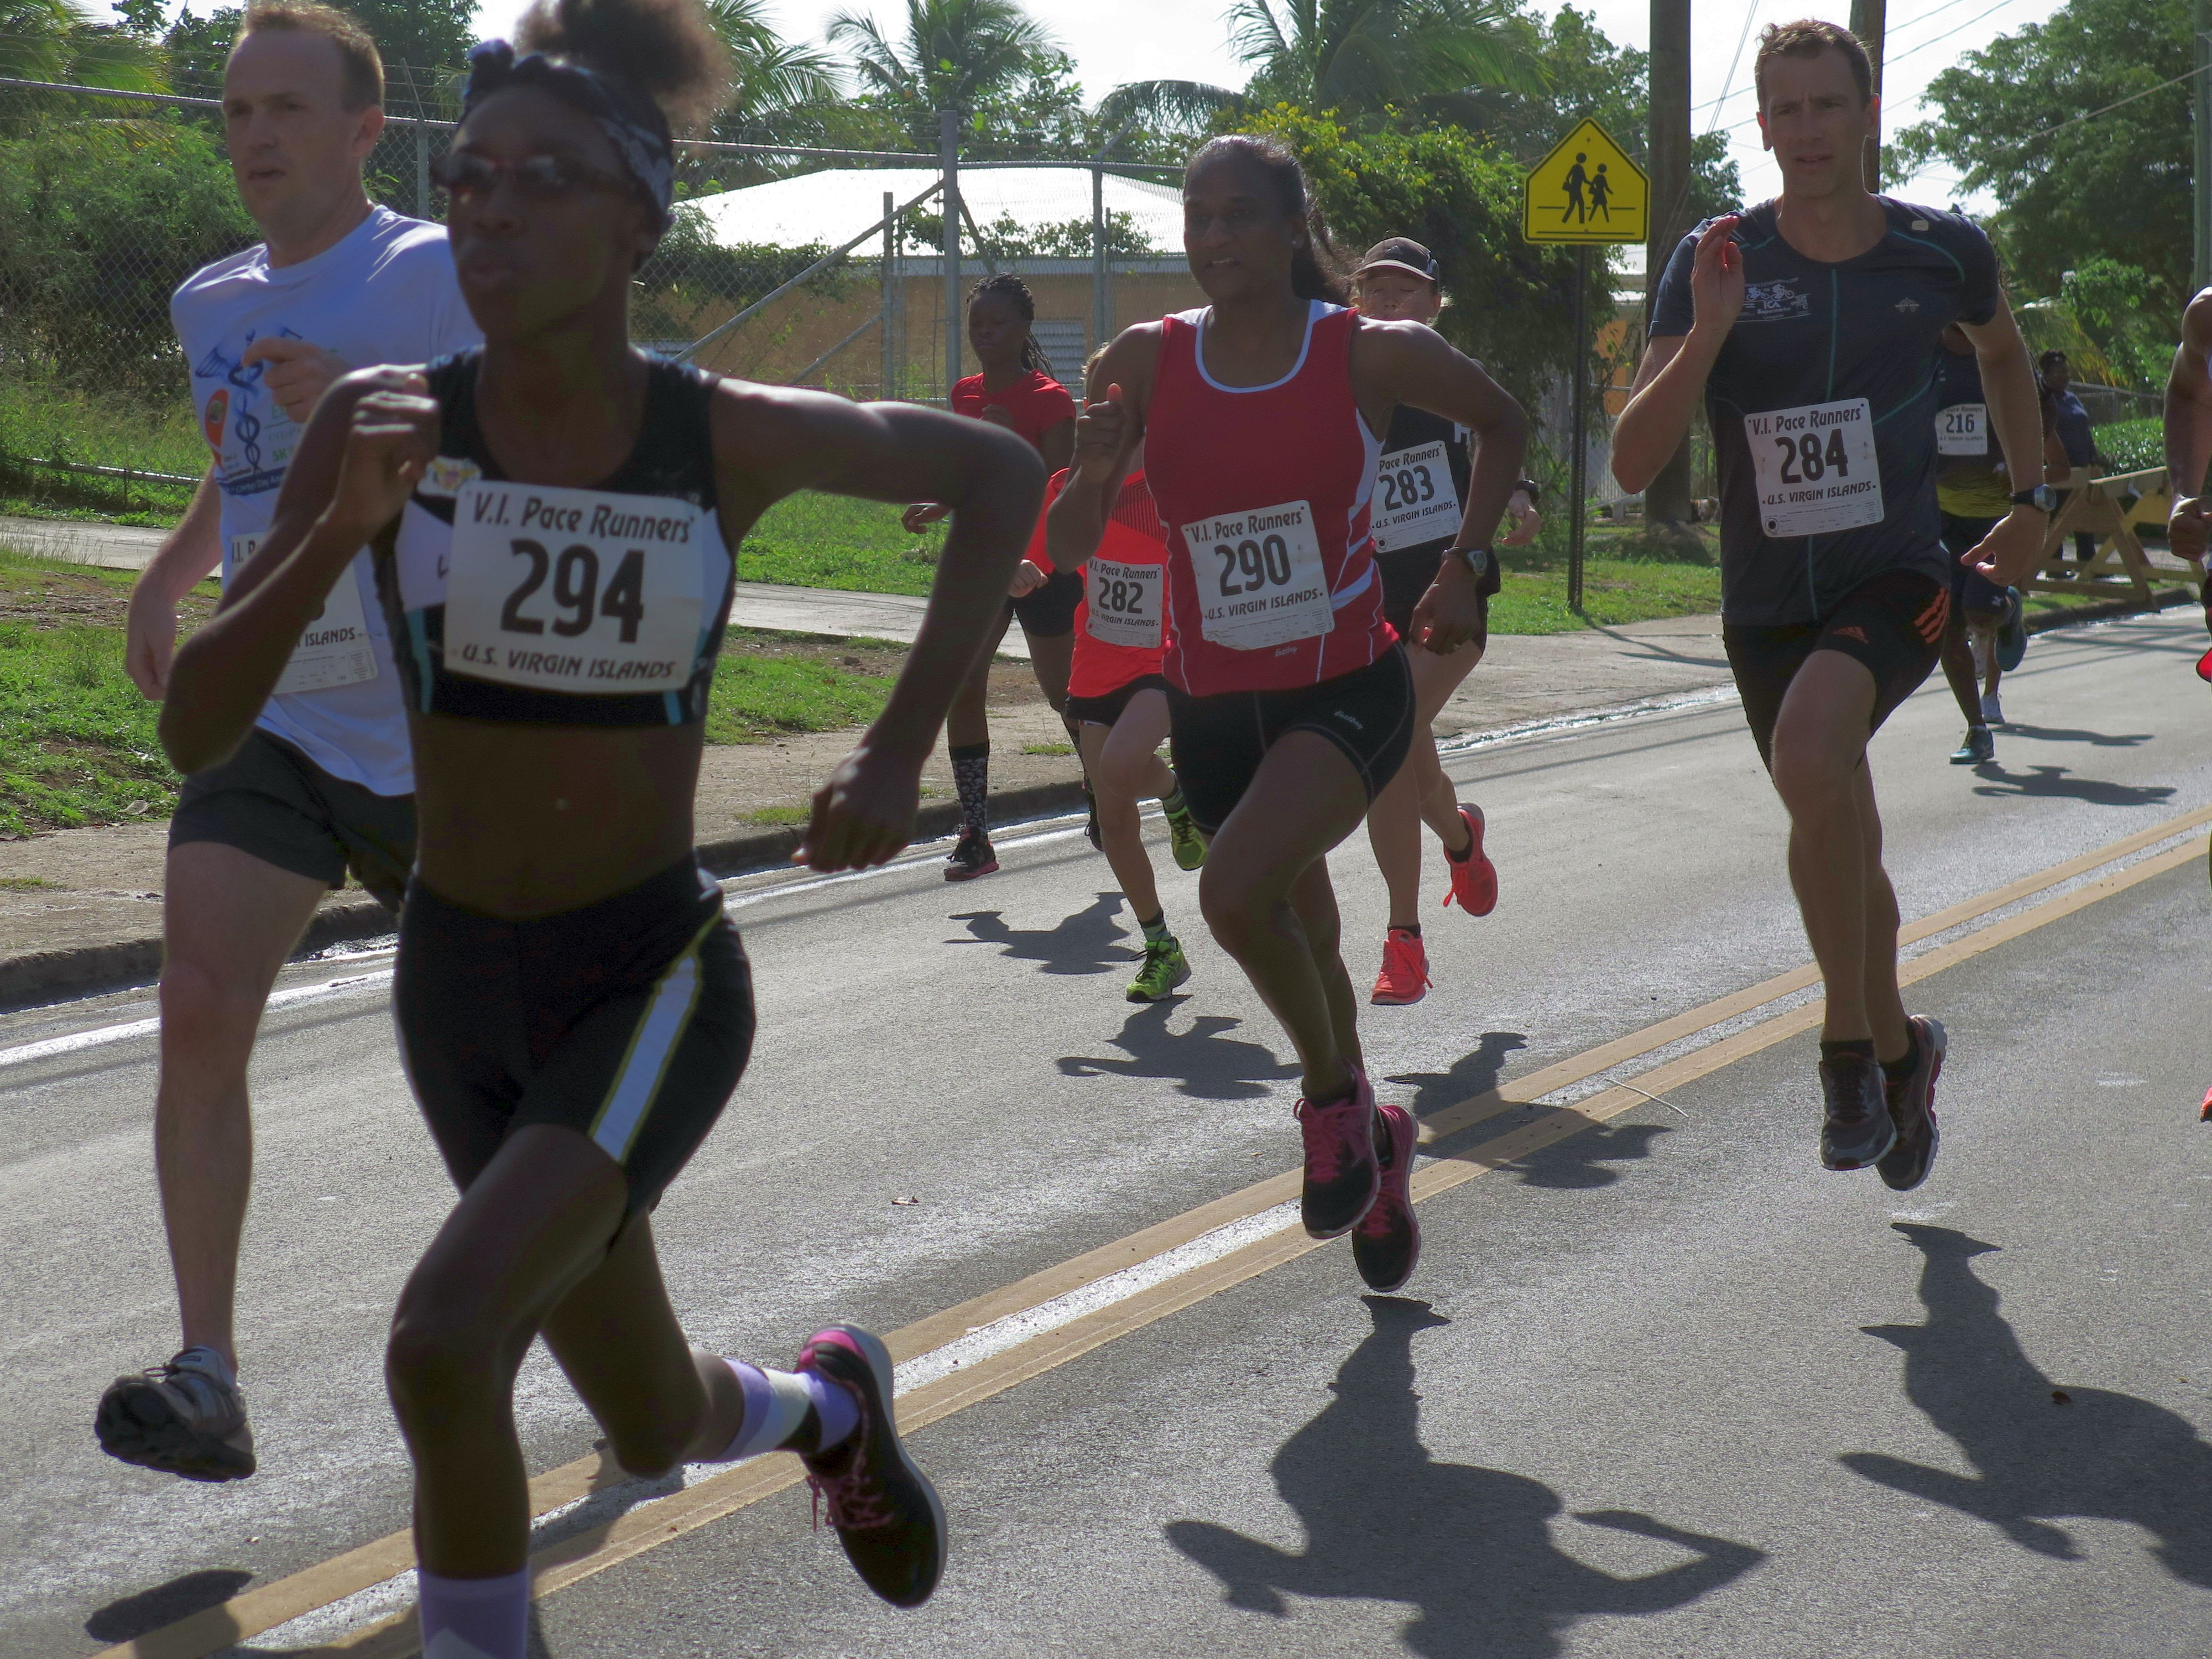 2016 3Kings Mile Road Race runners compete